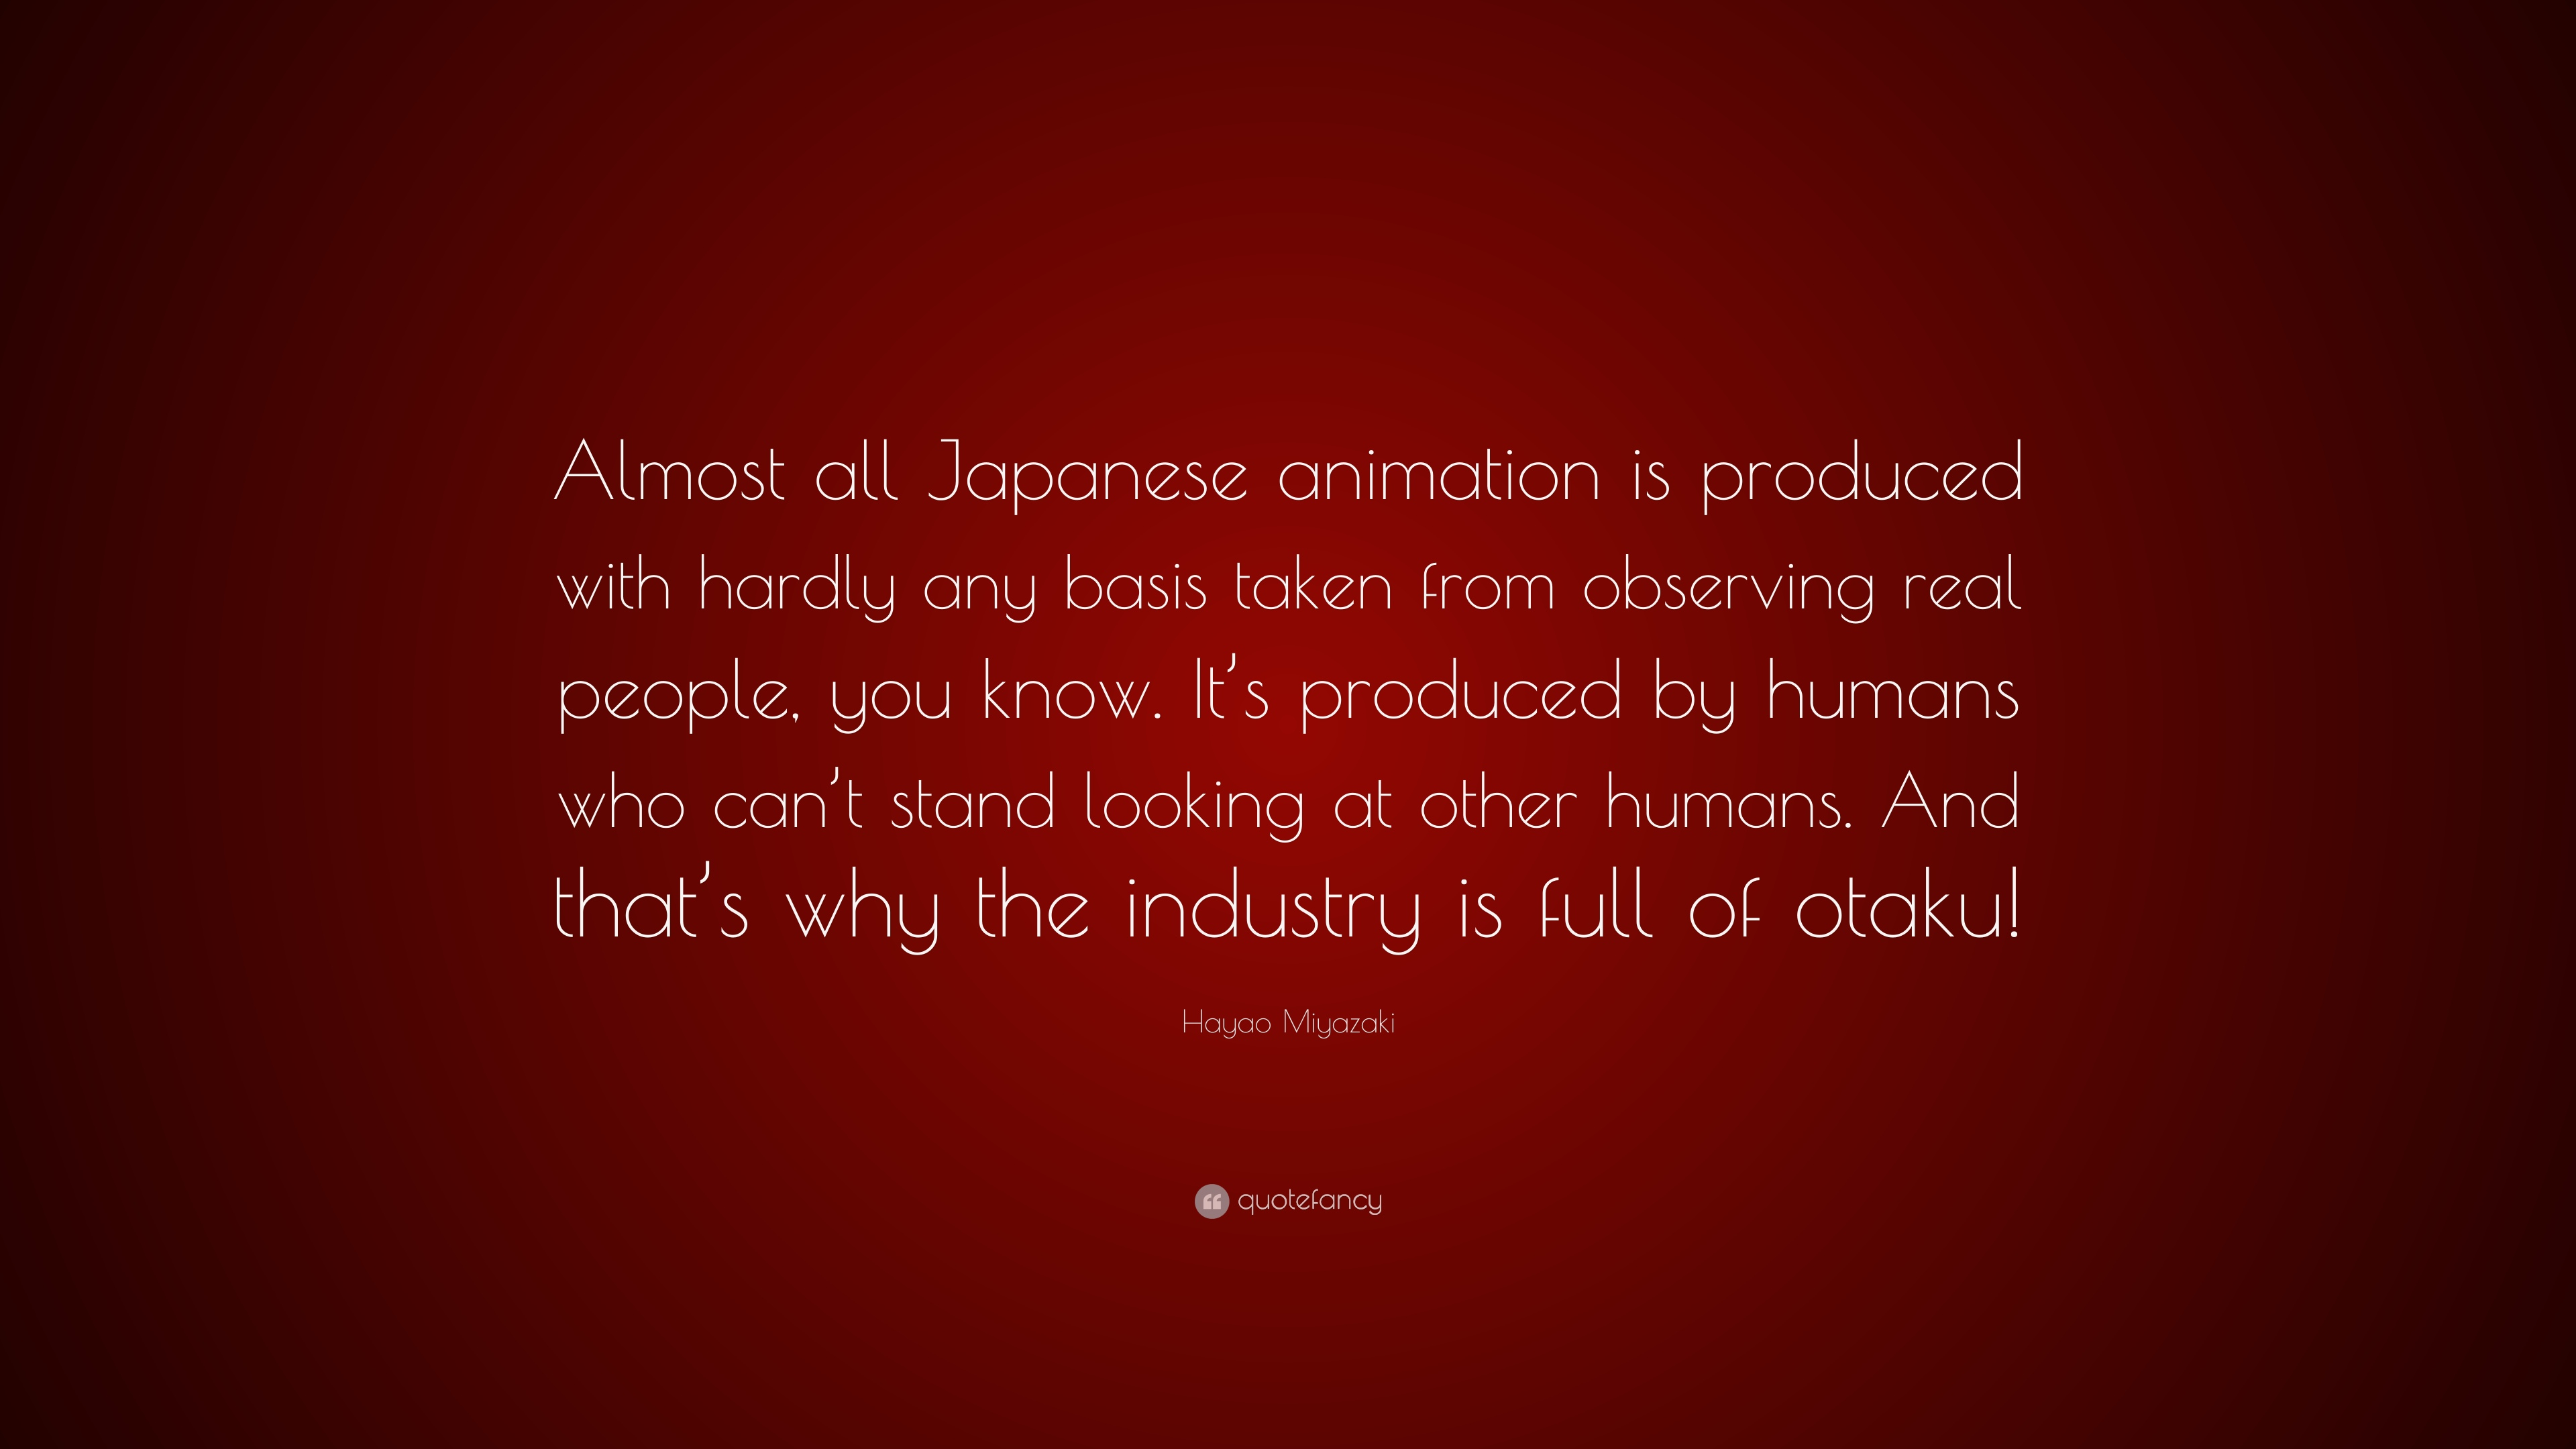 Hayao Miyazaki Quote Almost All Japanese Animation Is Produced With Hardly Any Basis Taken